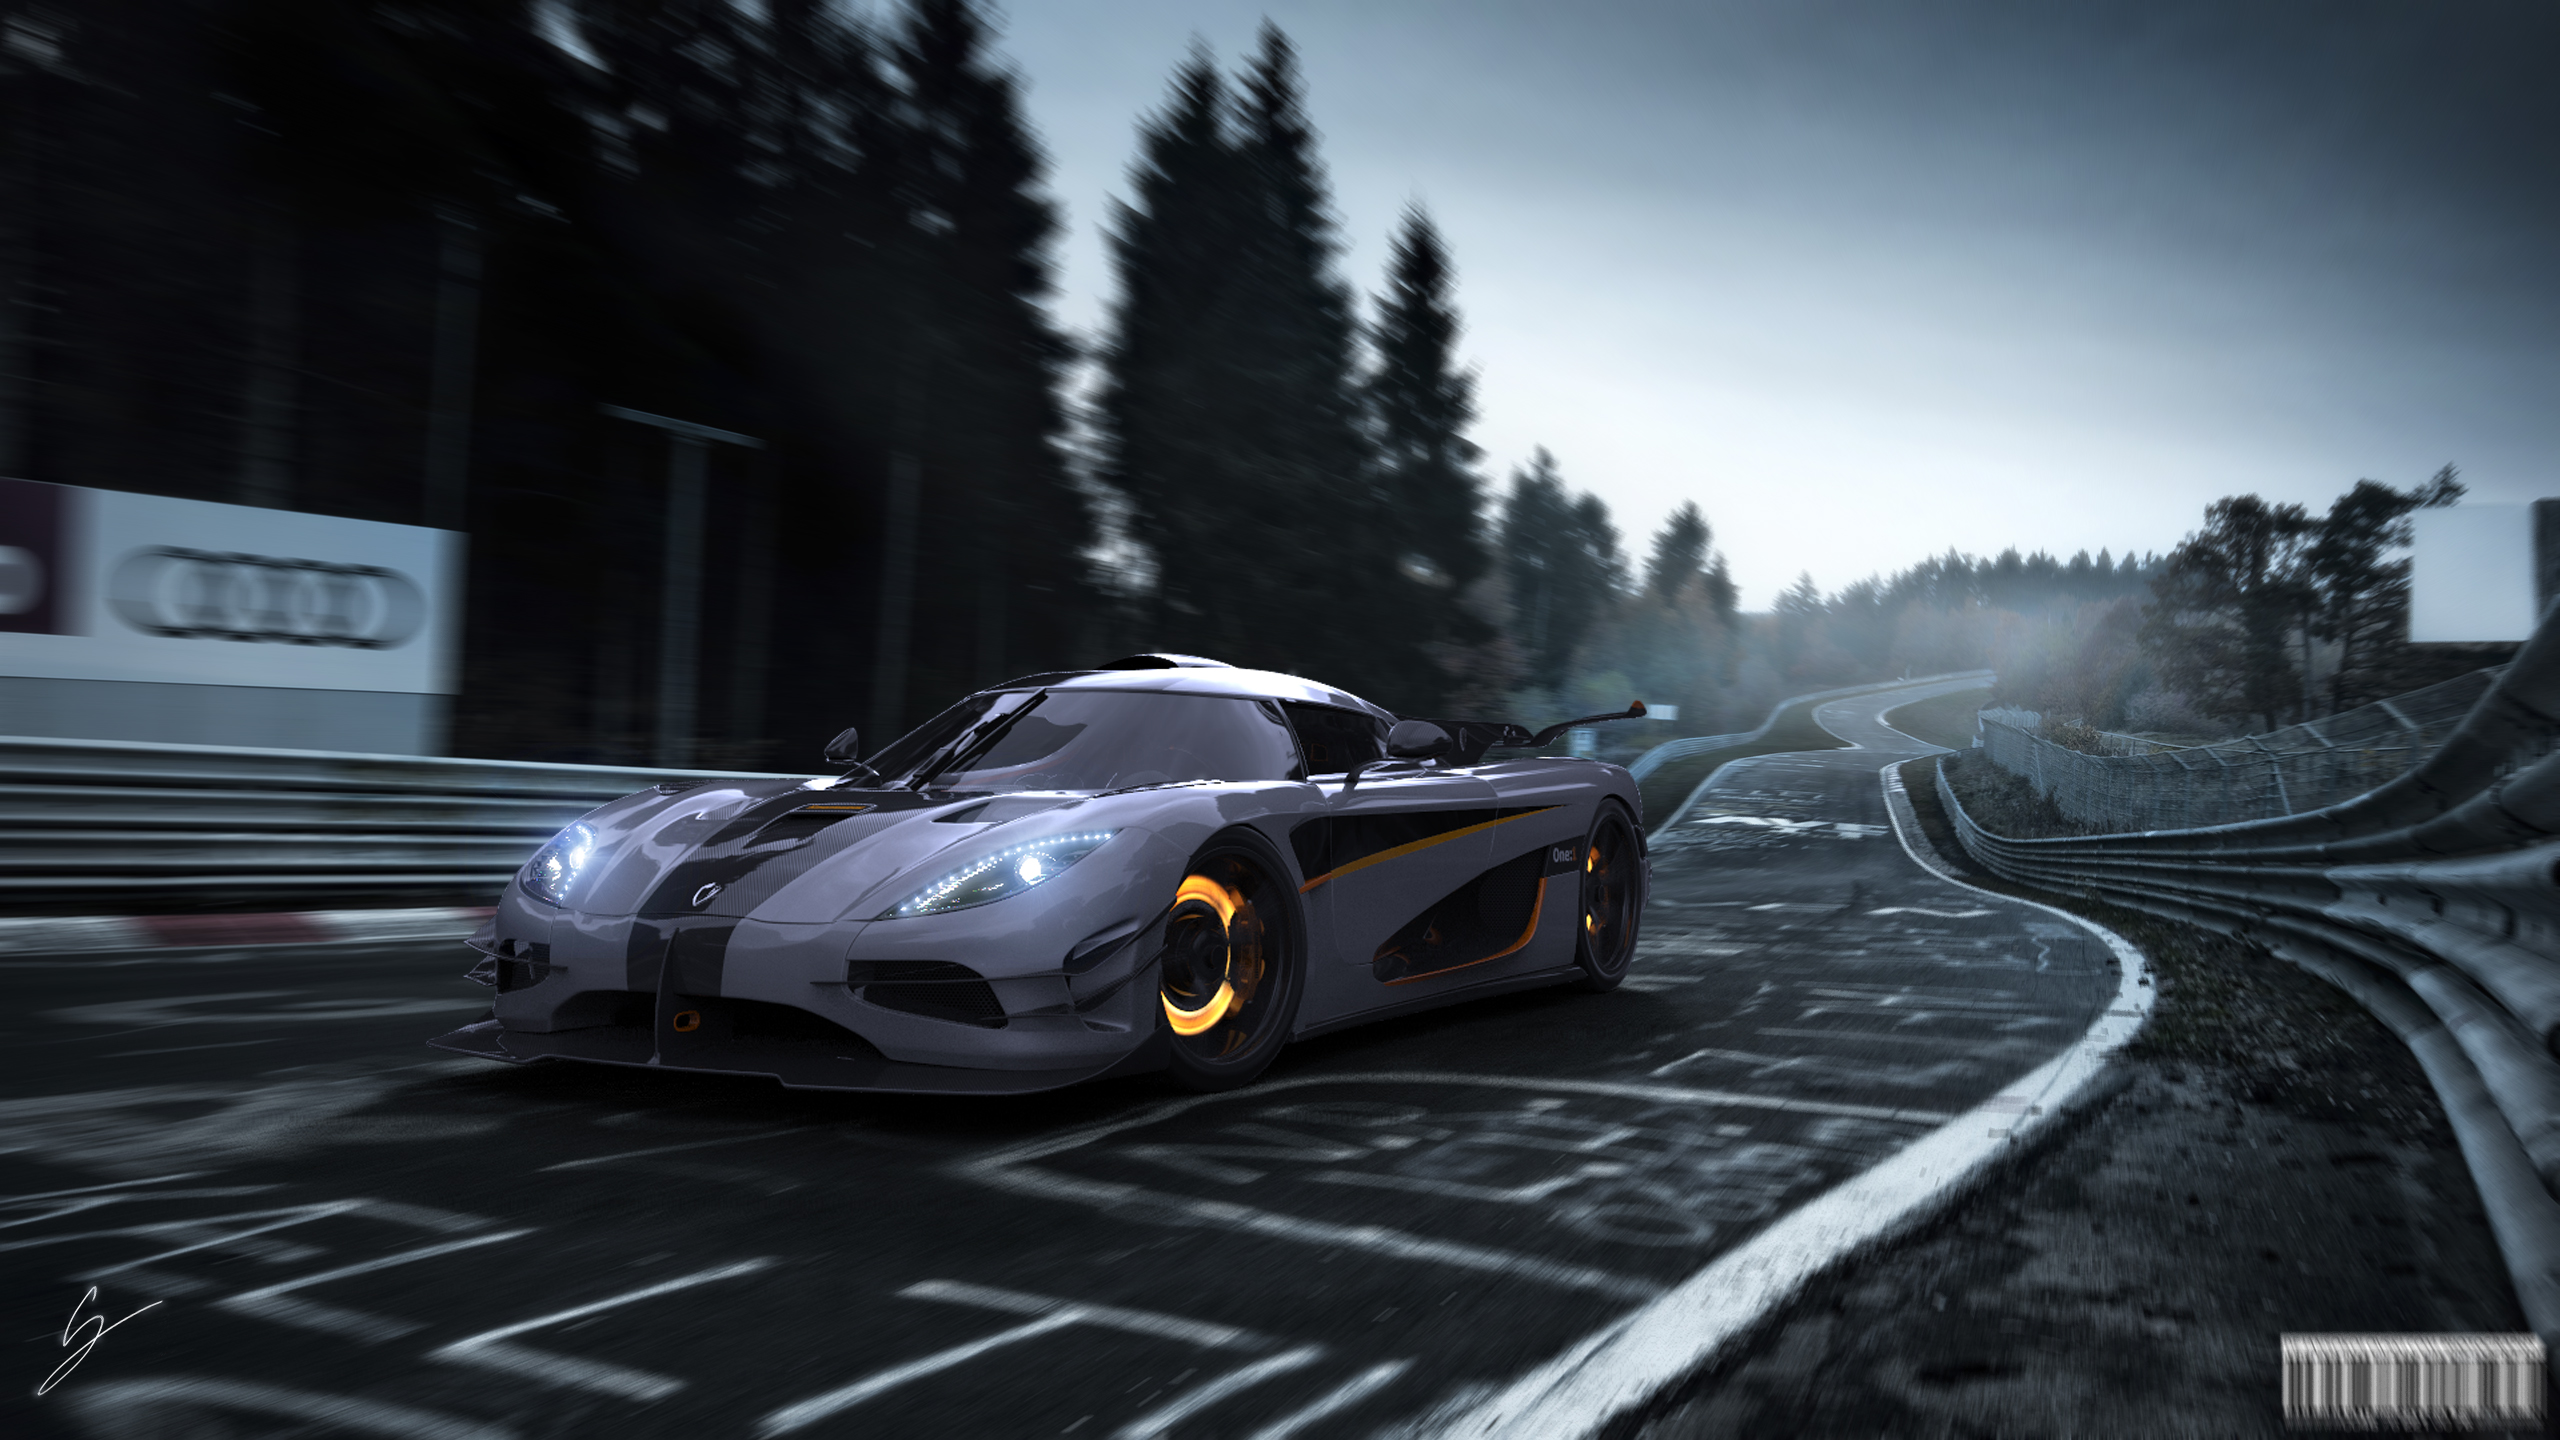 koenigsegg one 1 at the ring